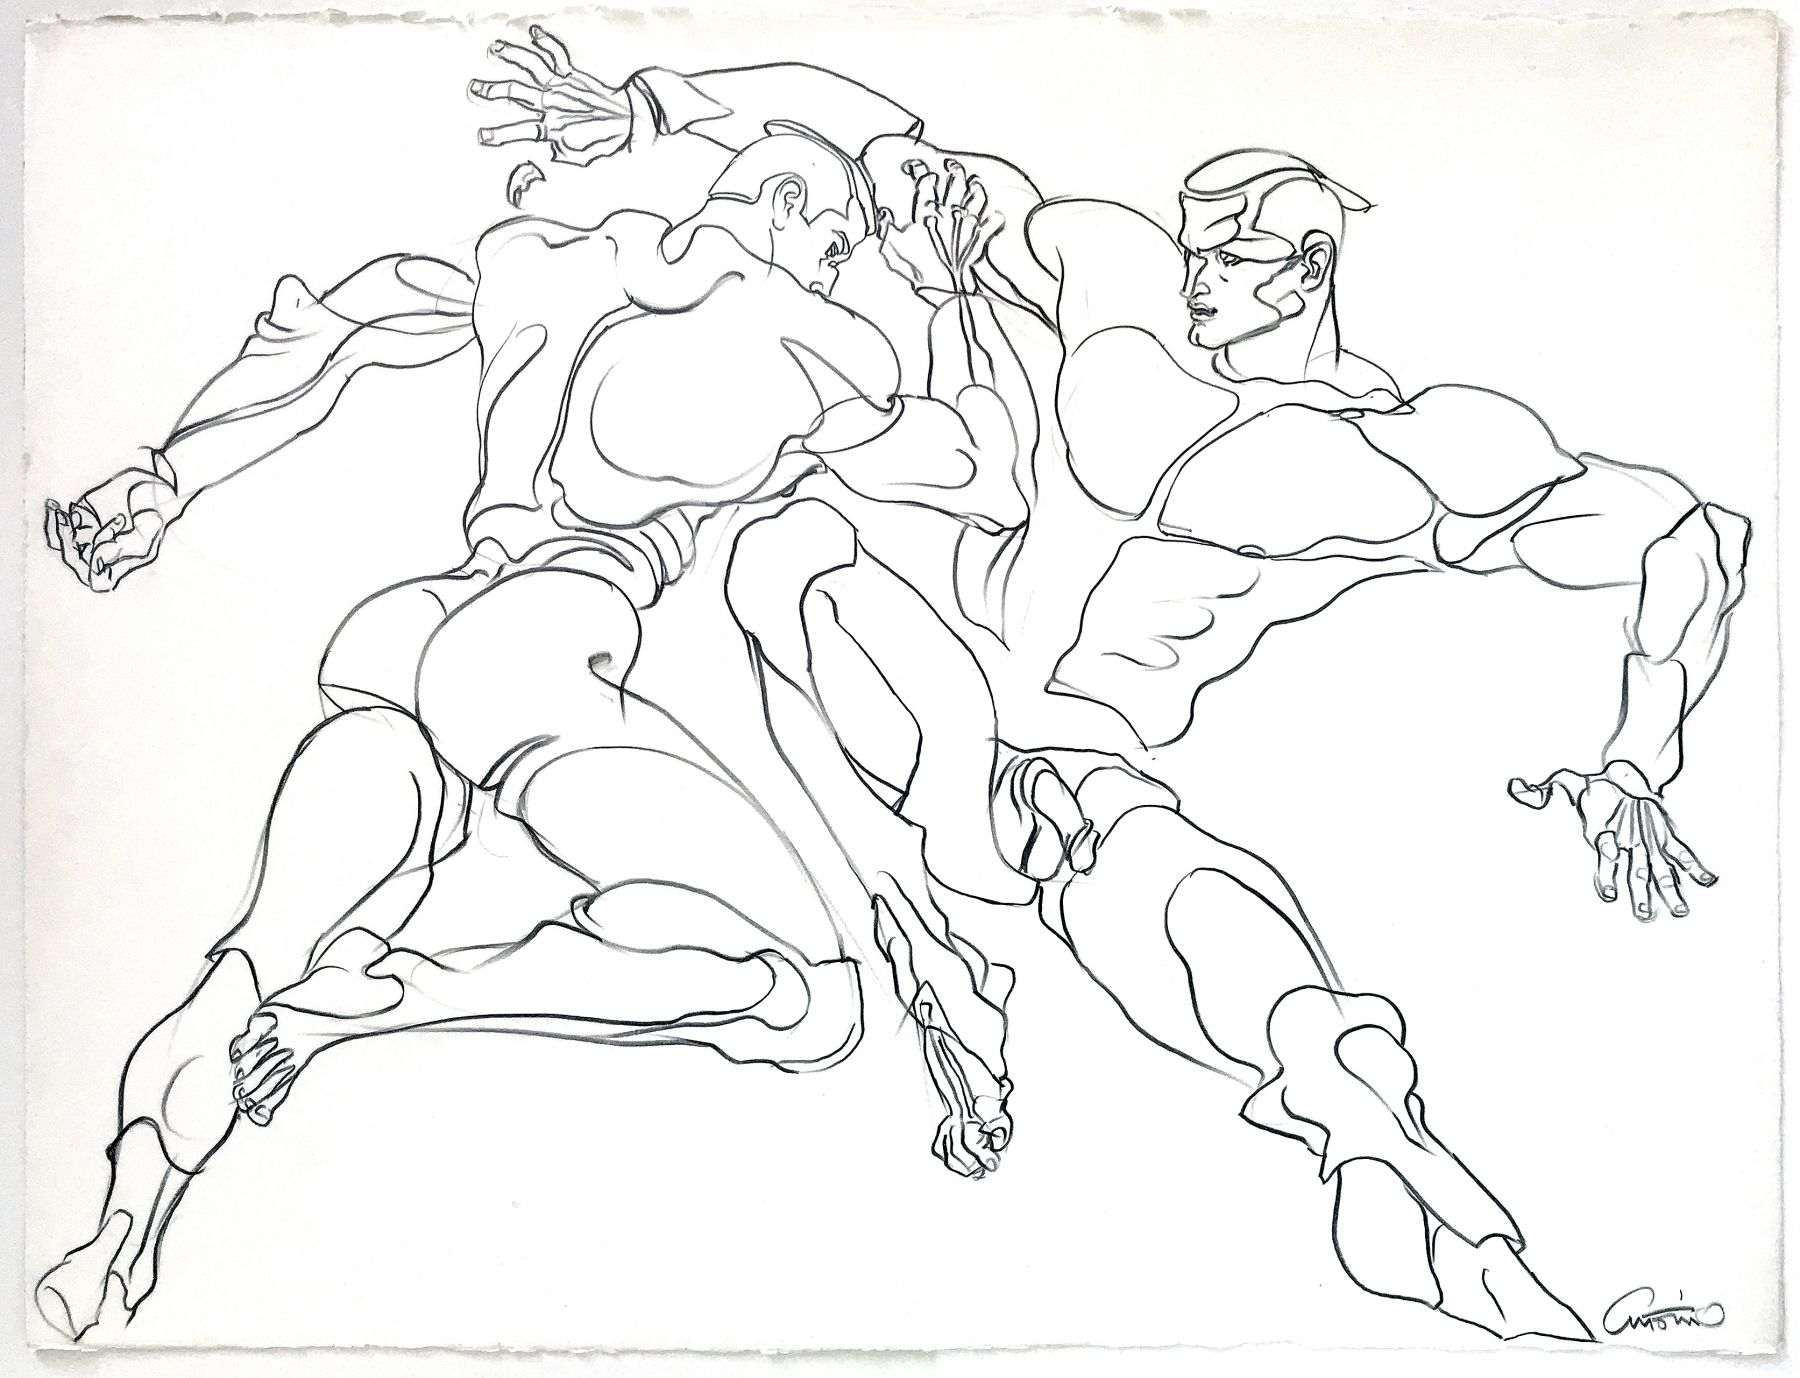 Drawing of wrestlers by Antonio Lopez